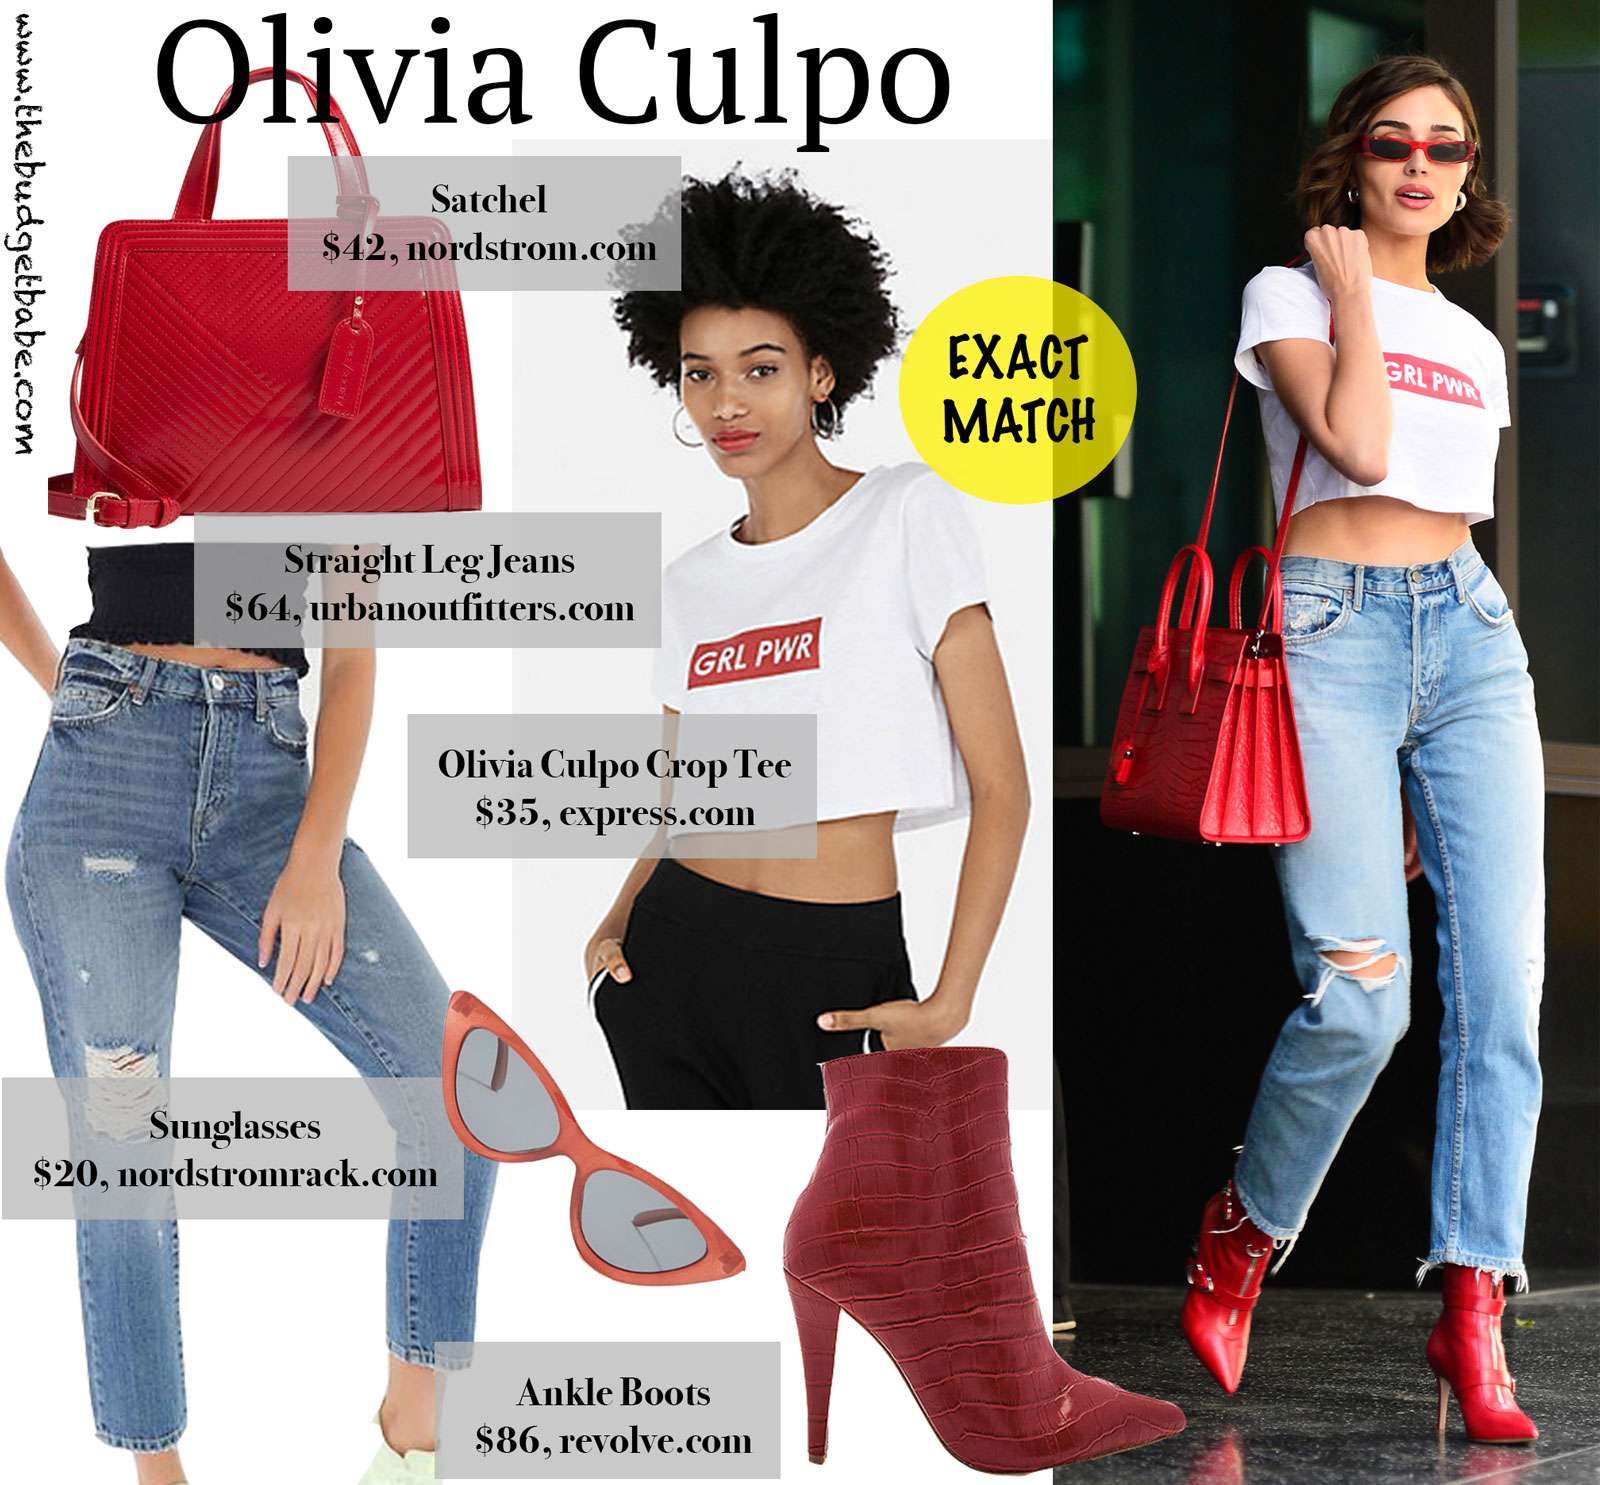 Olivia Culpo Grl Pwr Cropped Tee Look for Less